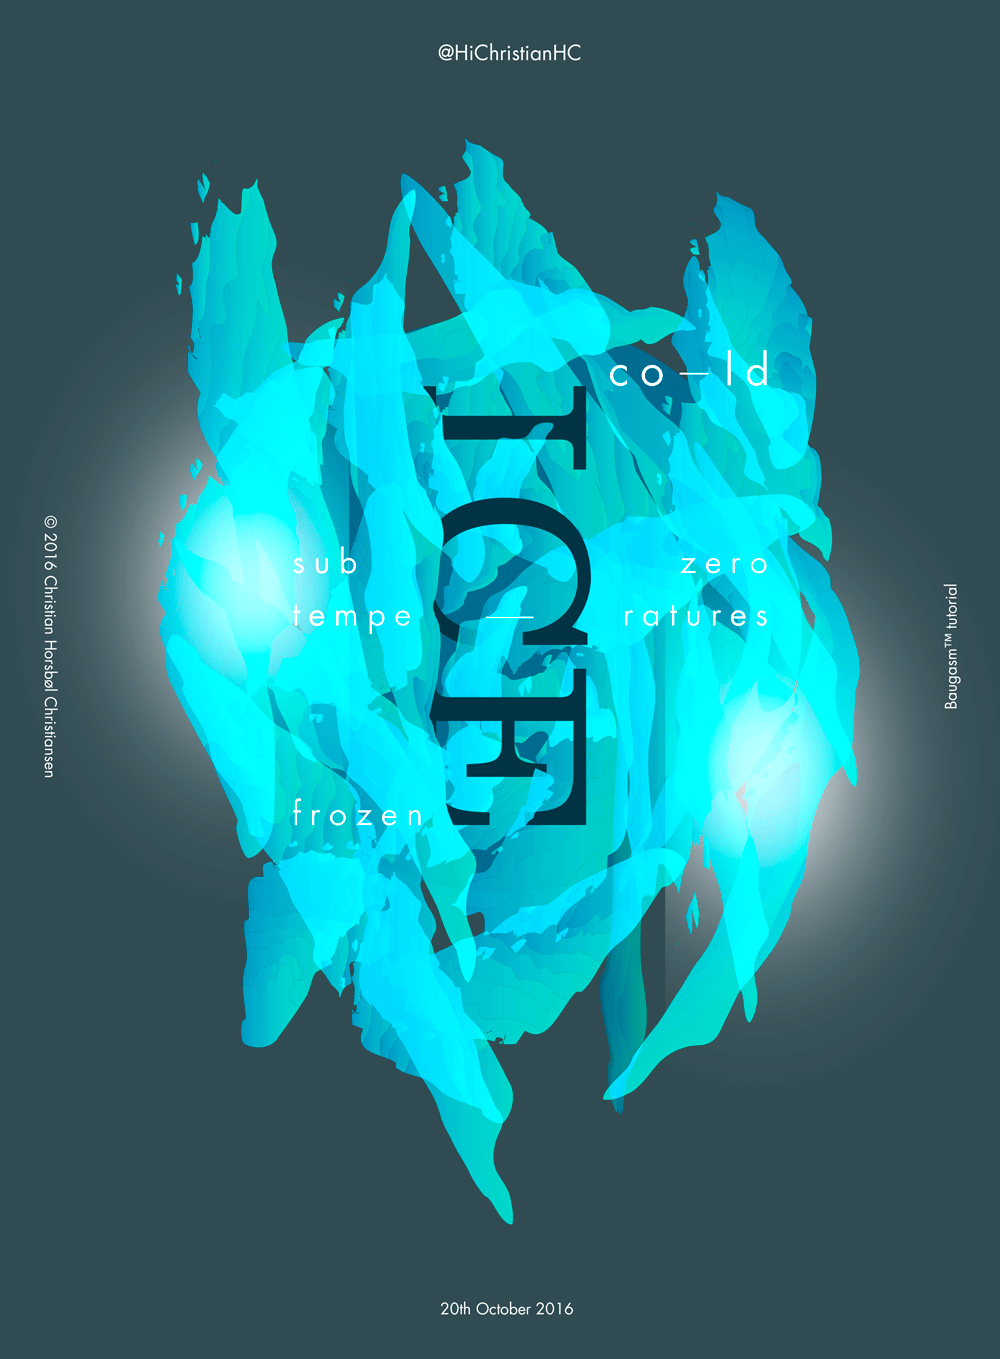 ICE - image 1 - student project